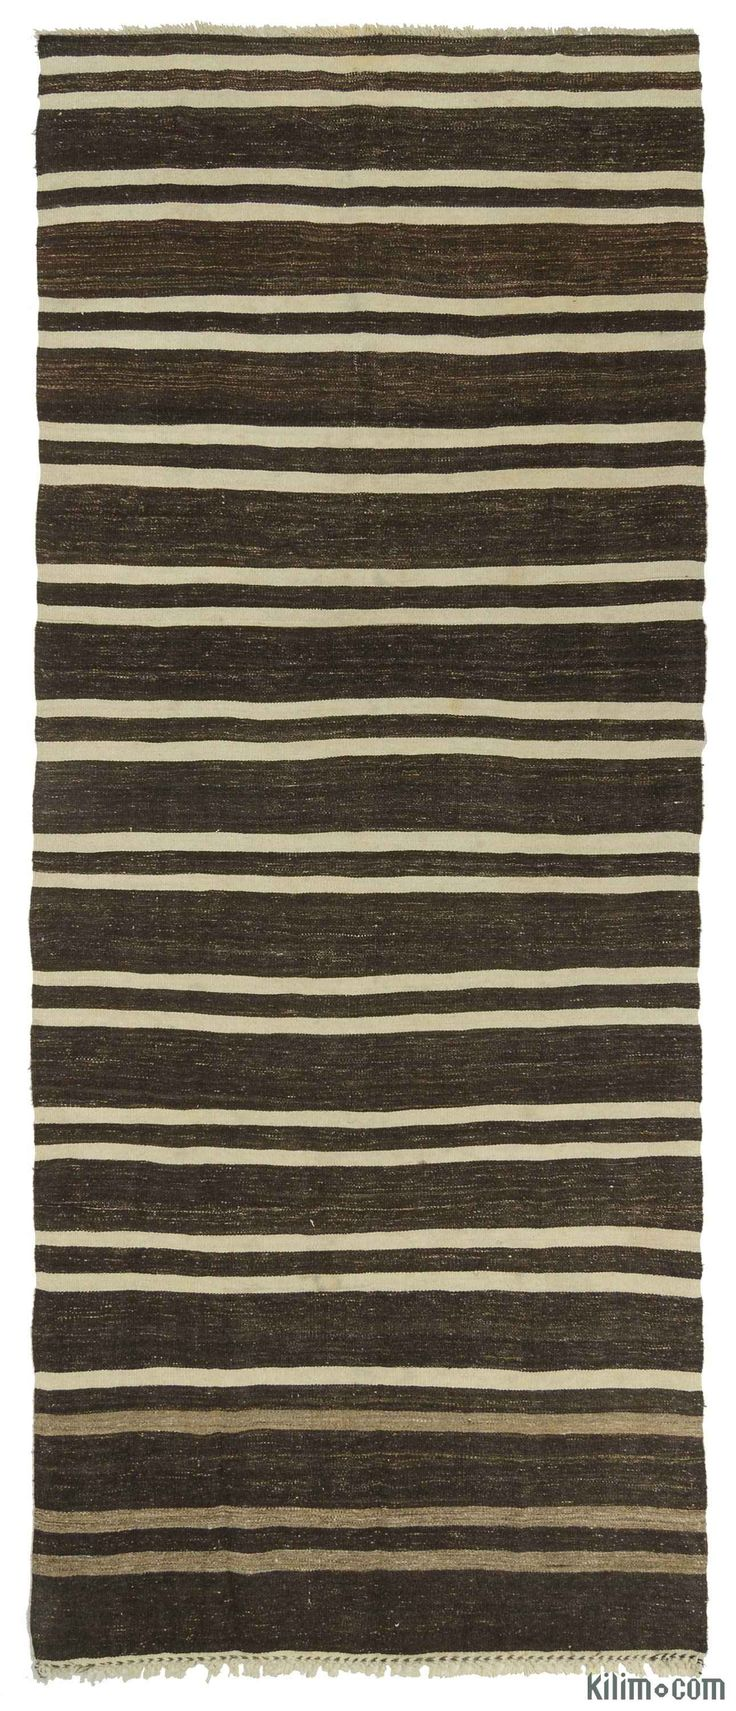 Vintage striped kilim runner rug handwoven in Turkey in 1960's. This tribal minimalist rug is in very good condition. It is perfect for contemporary settings.